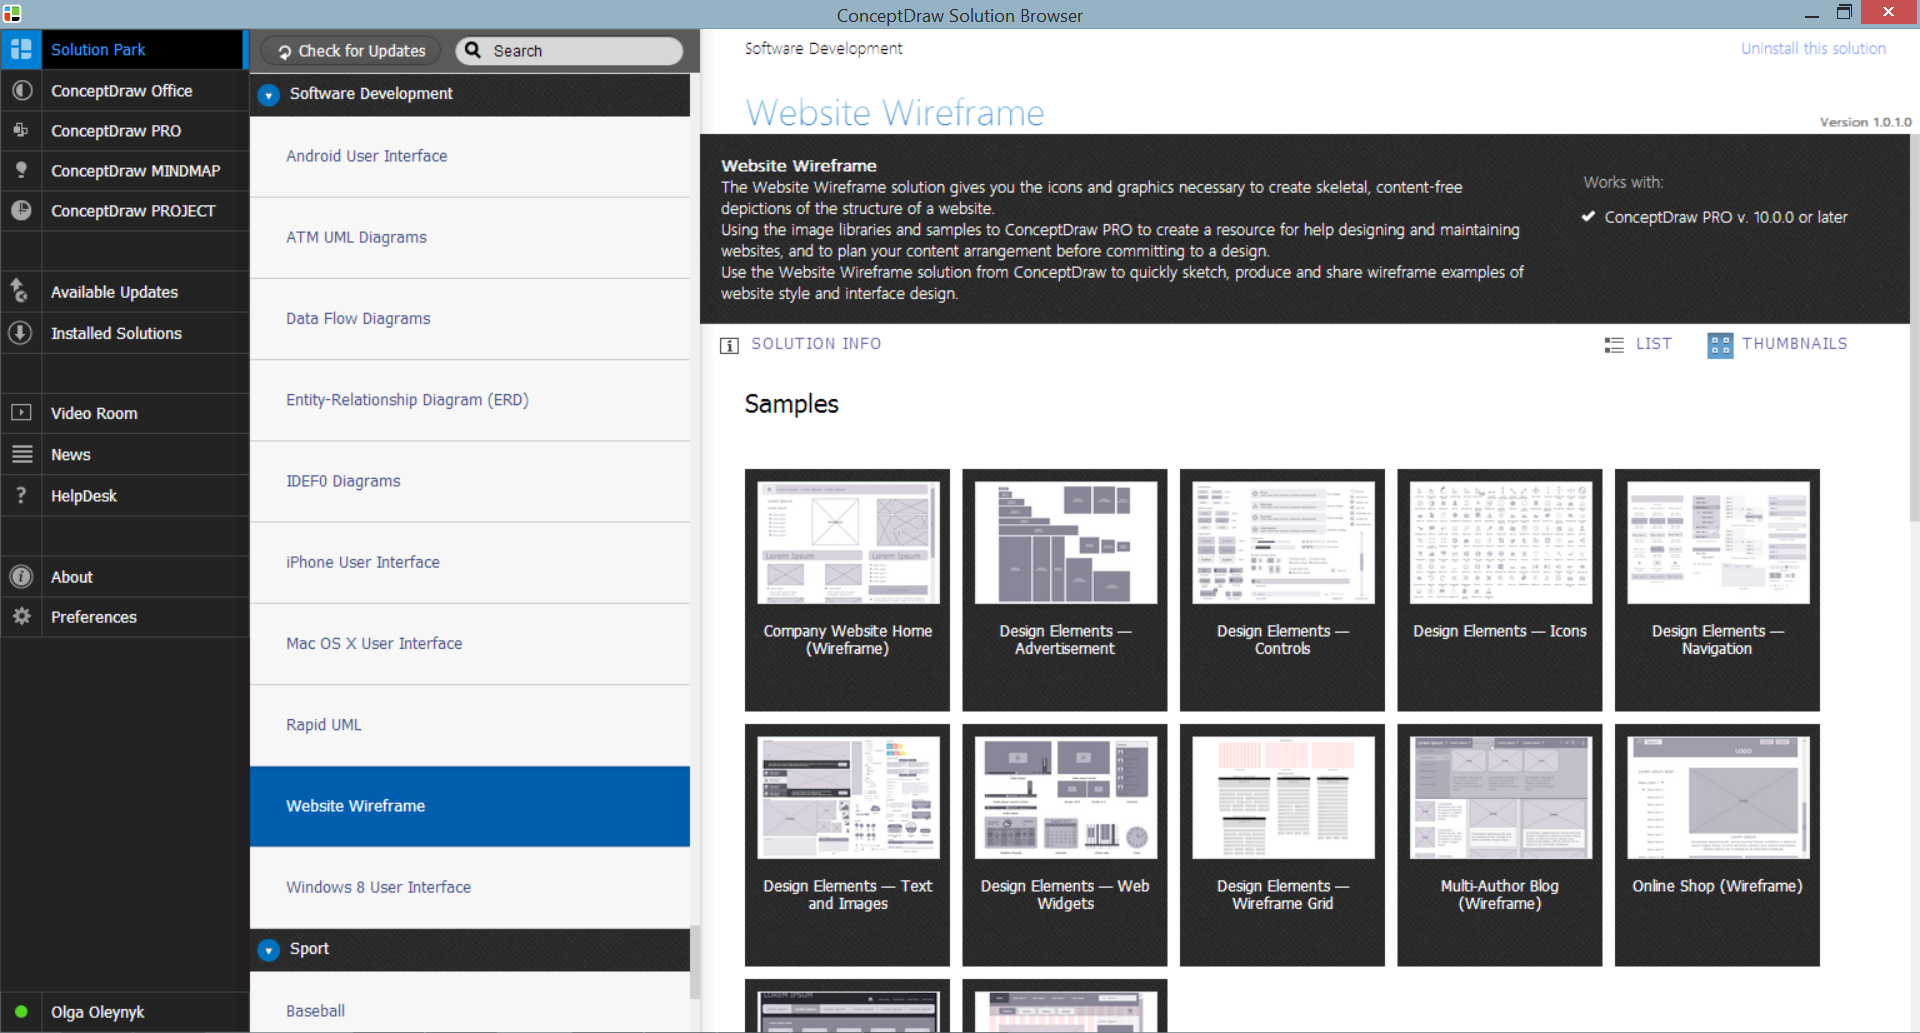 Website Wireframe Solution in ConceptDraw STORE